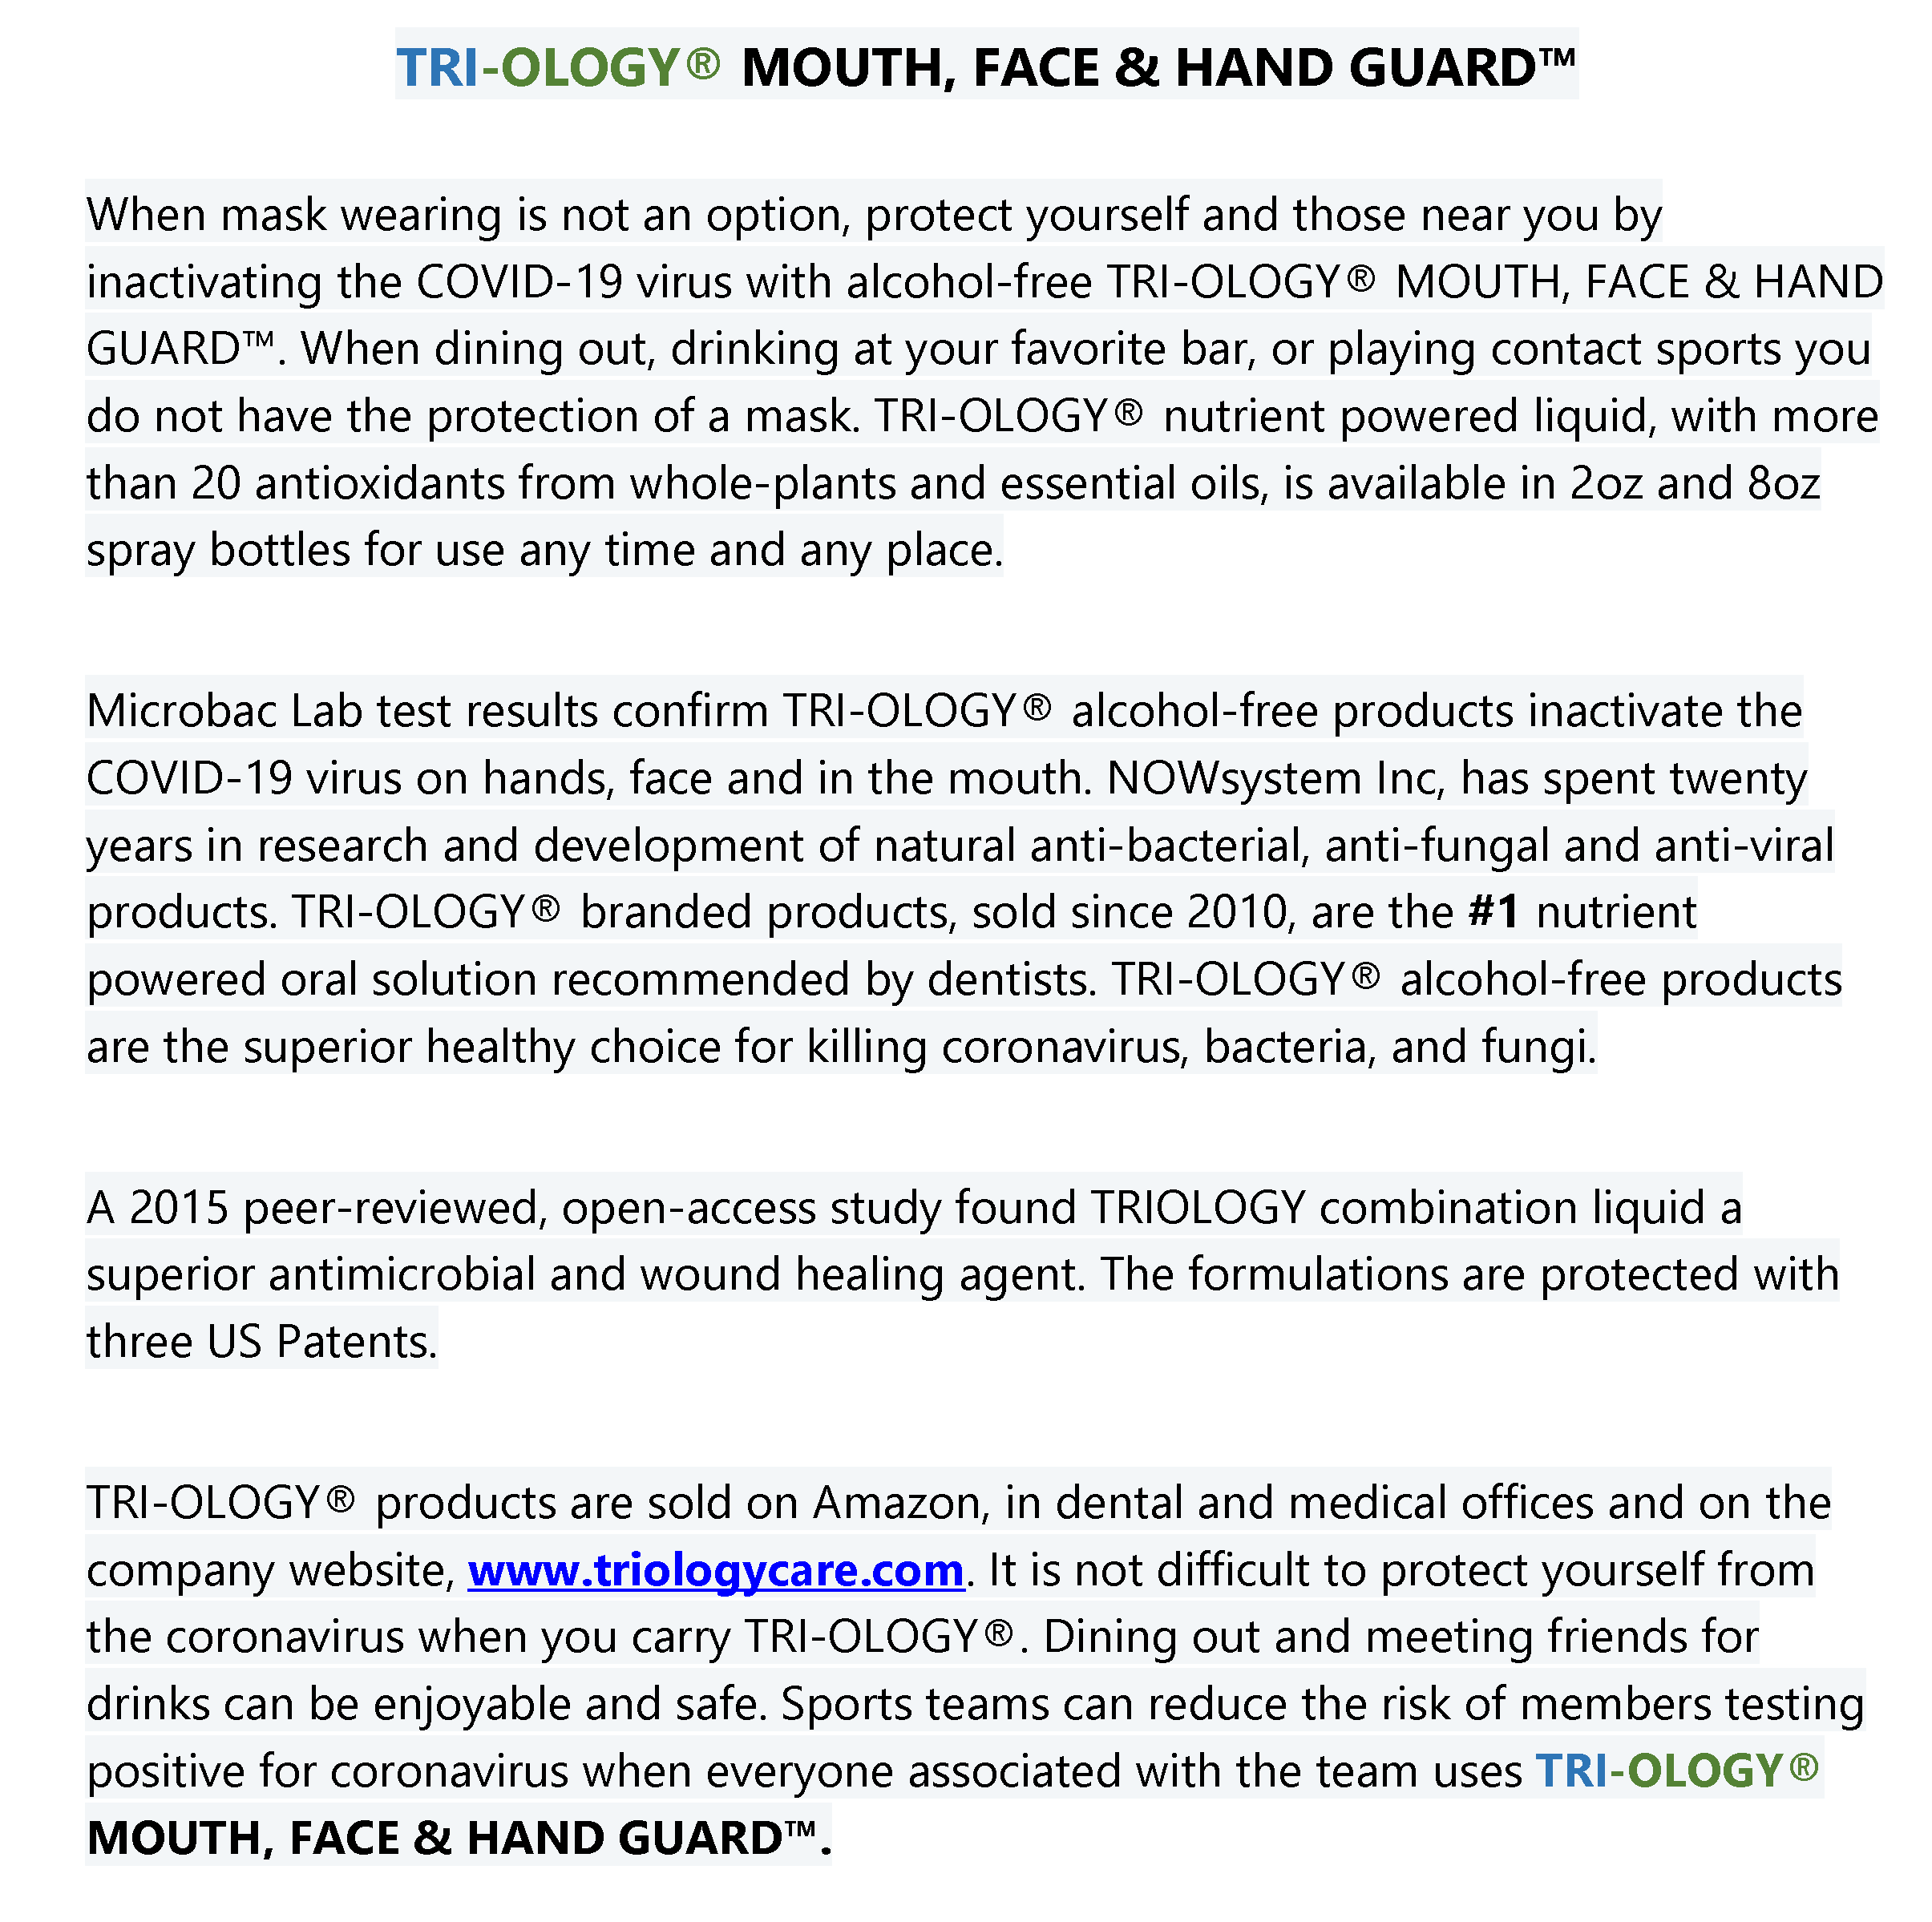 tri-ology-mouth-face-hand-guard-v2.png